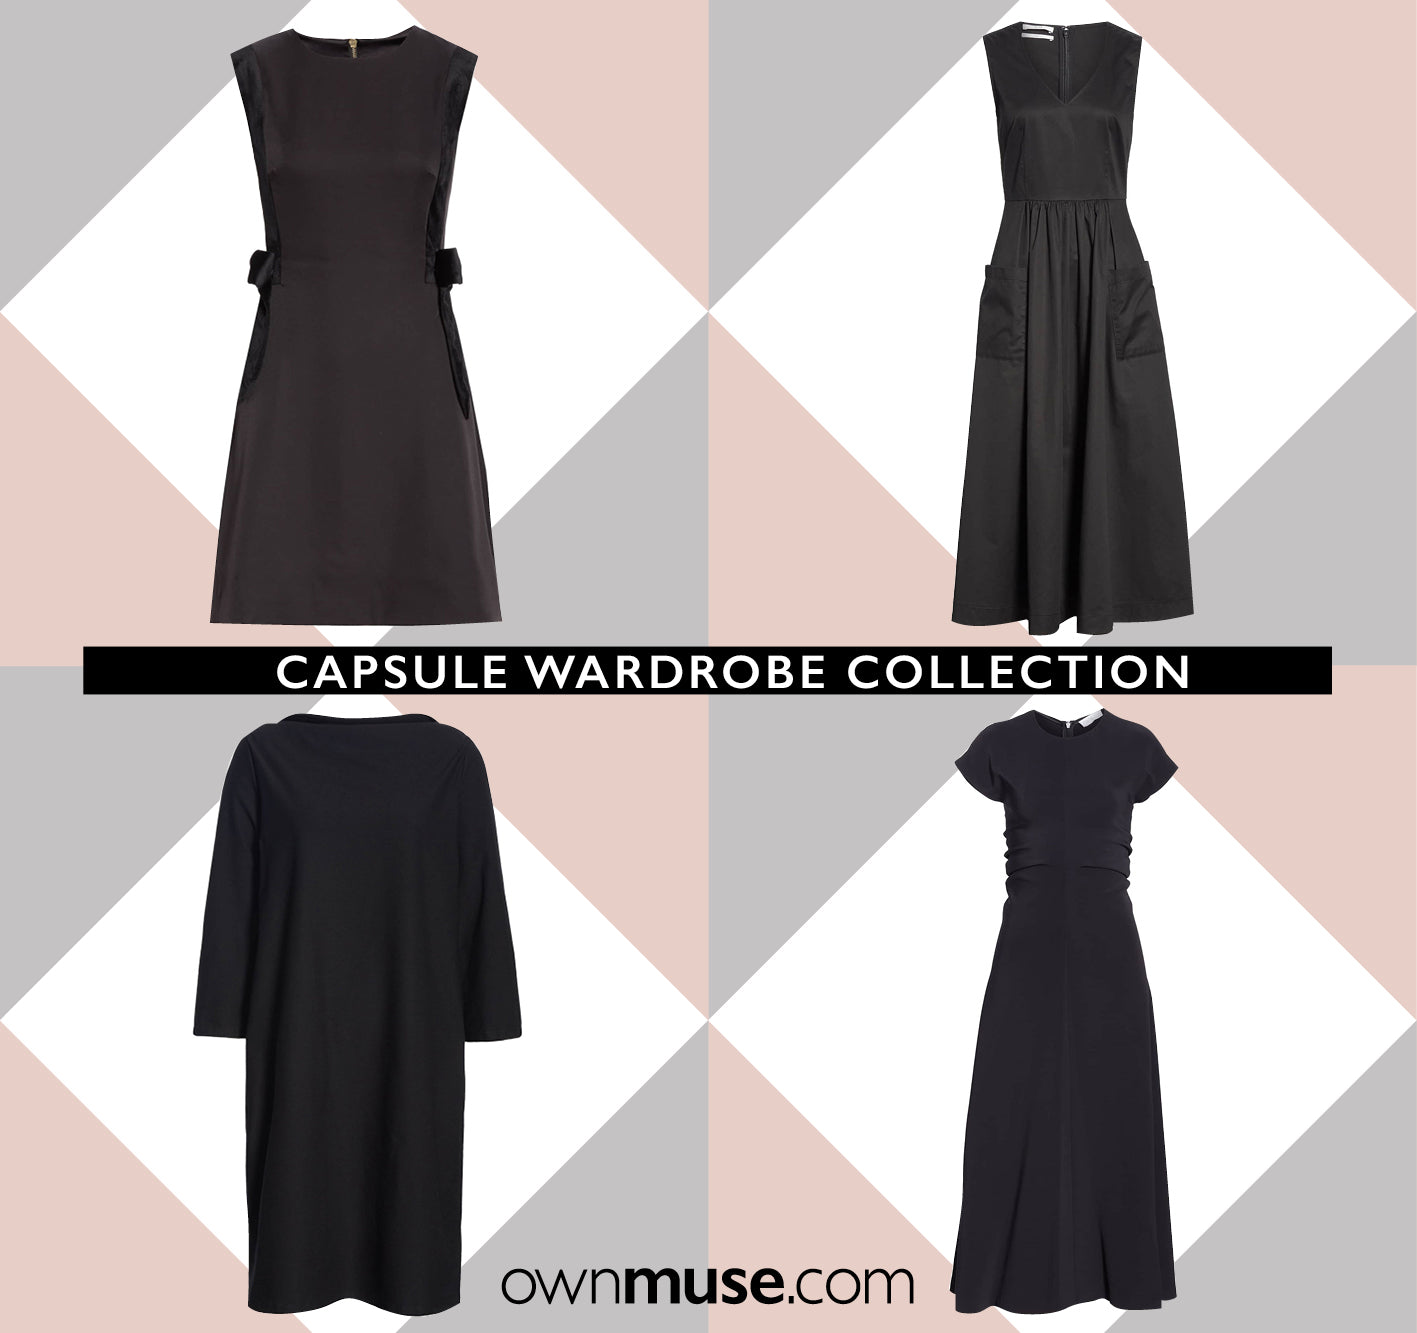 Capsule wardrobe collection little black dress